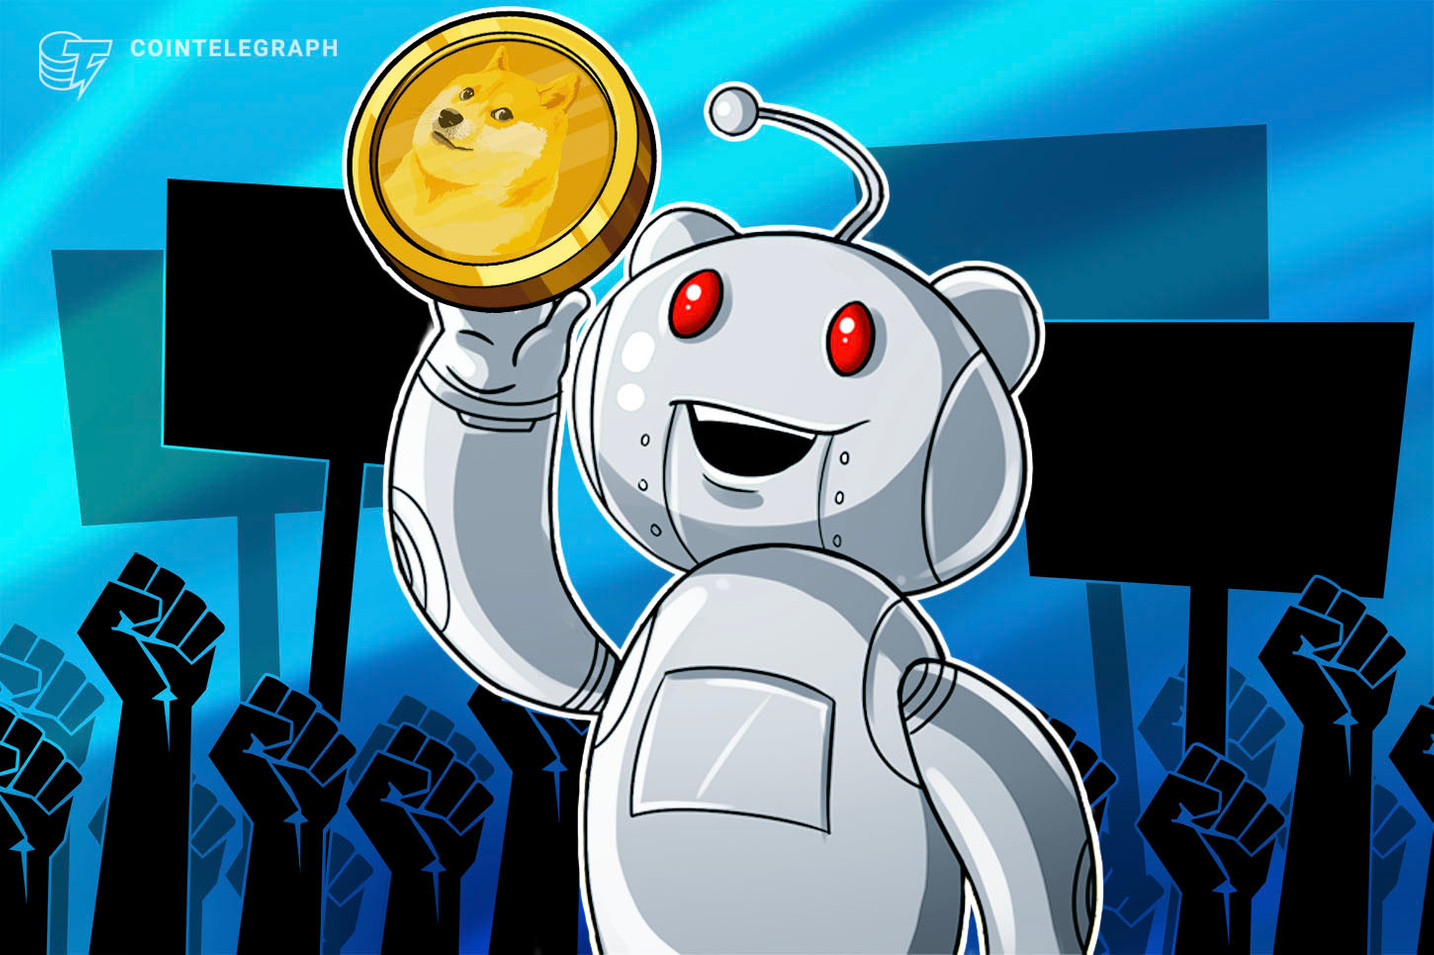 The crypto community is growing - Reddit sub-forums are attracting many newcomers